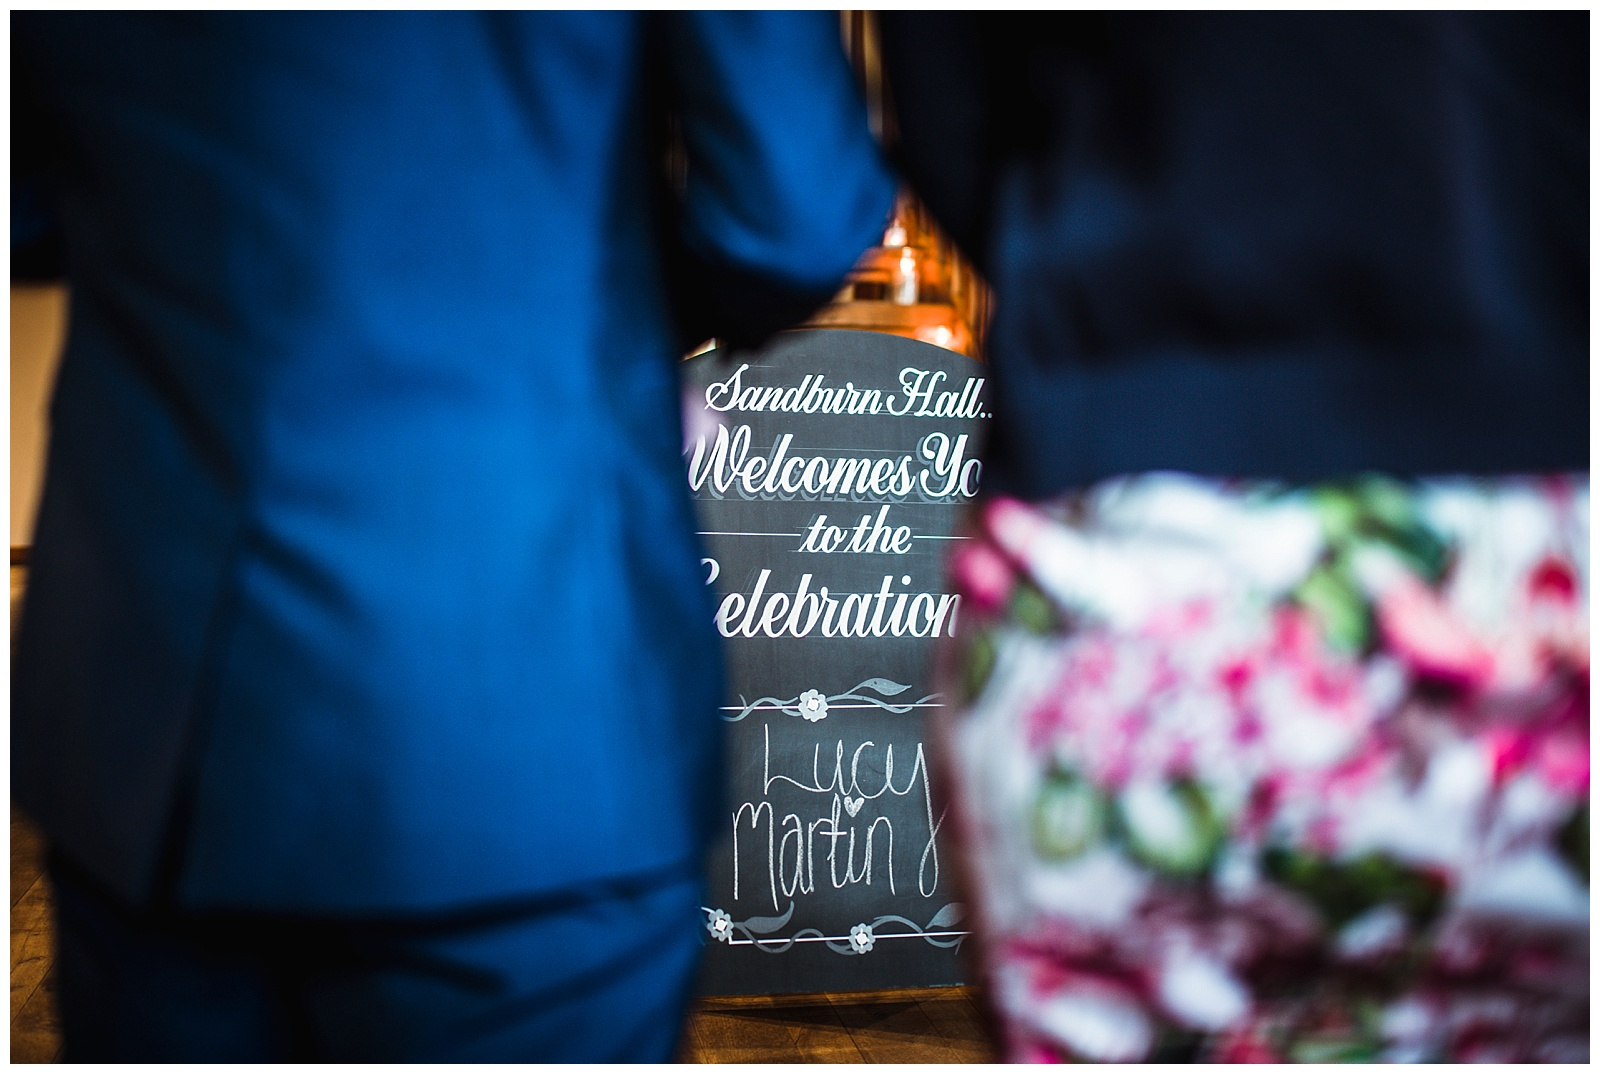 getting married Sandburn Hall